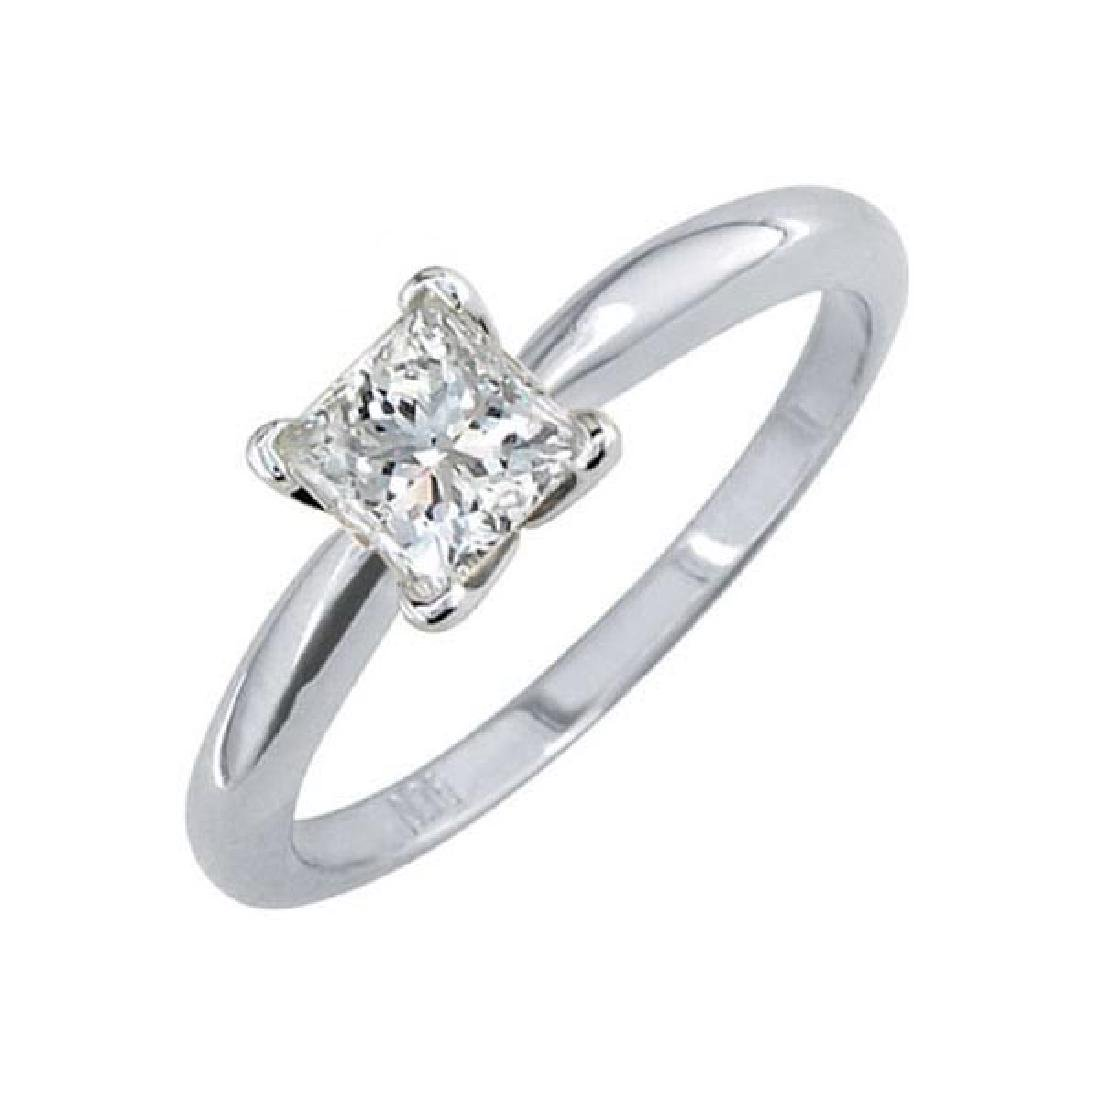 Certified 1.21 CTW Princess Diamond Solitaire 14k Ring